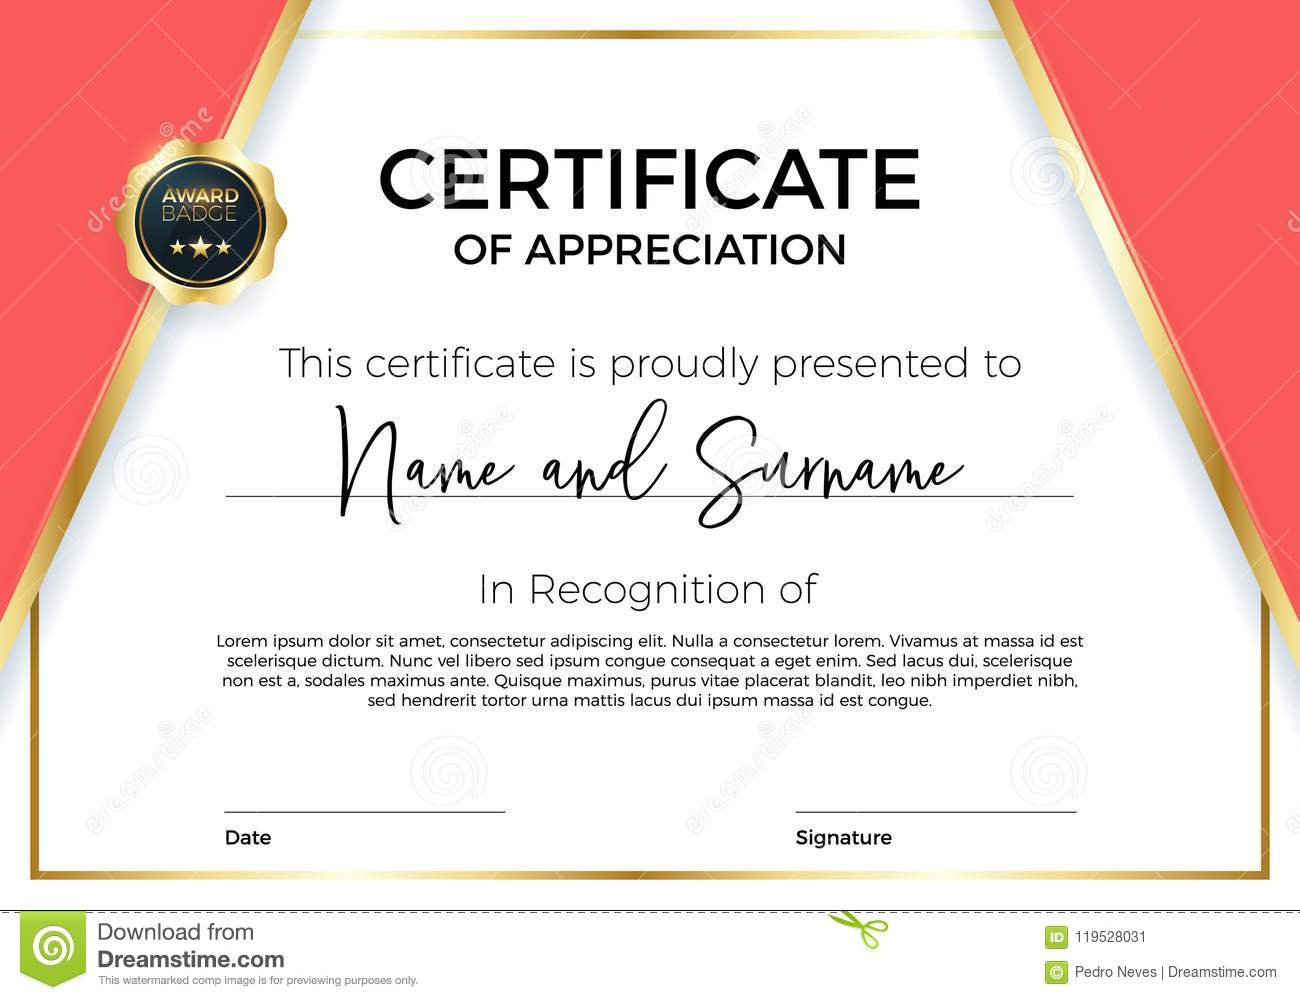 certificate of appreciation or achievement with award badge premium